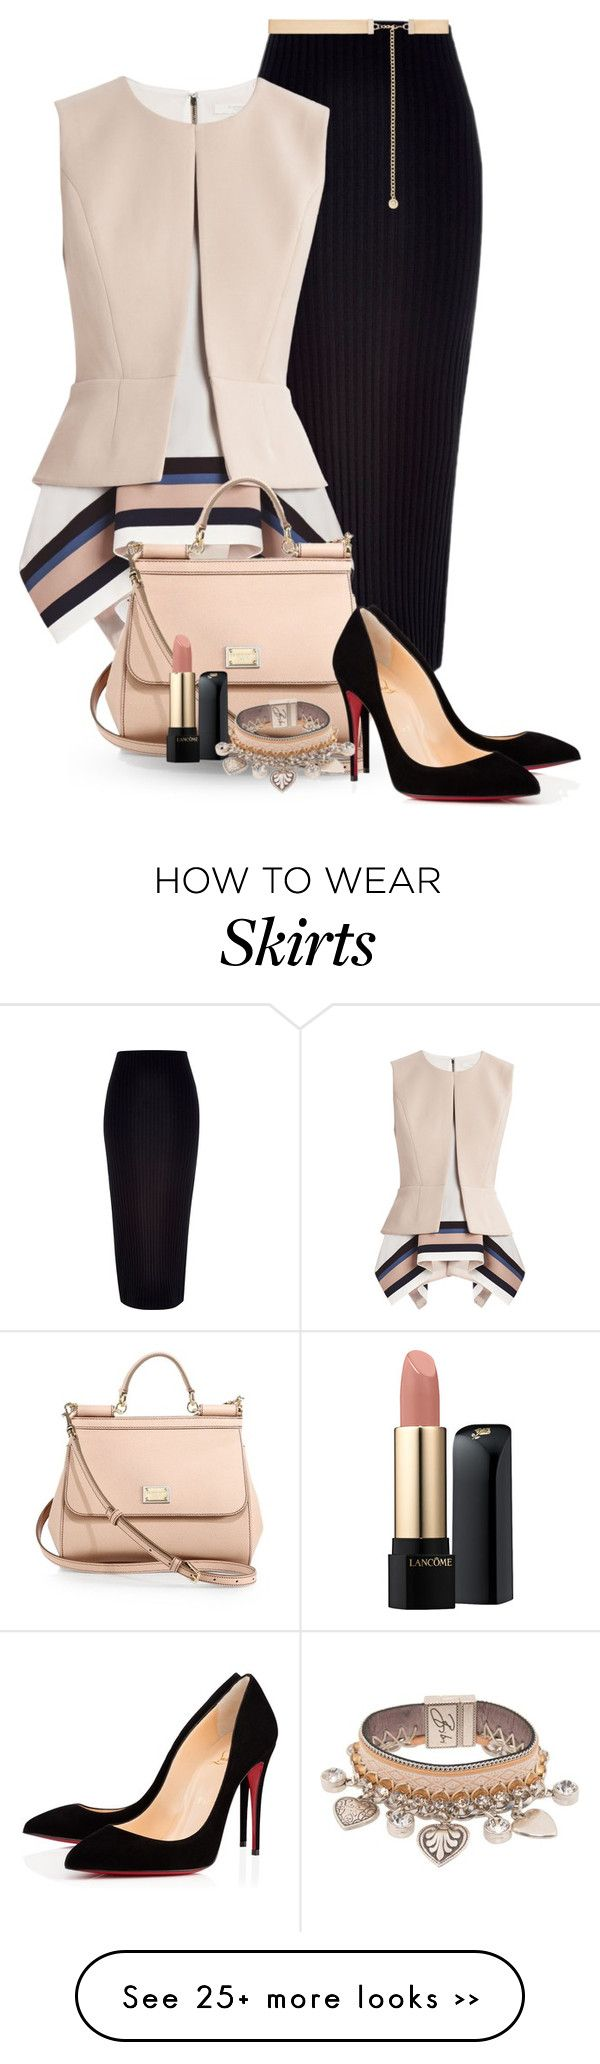 """""""Maxi Skirt"""" by flowerchild805 on Polyvore"""